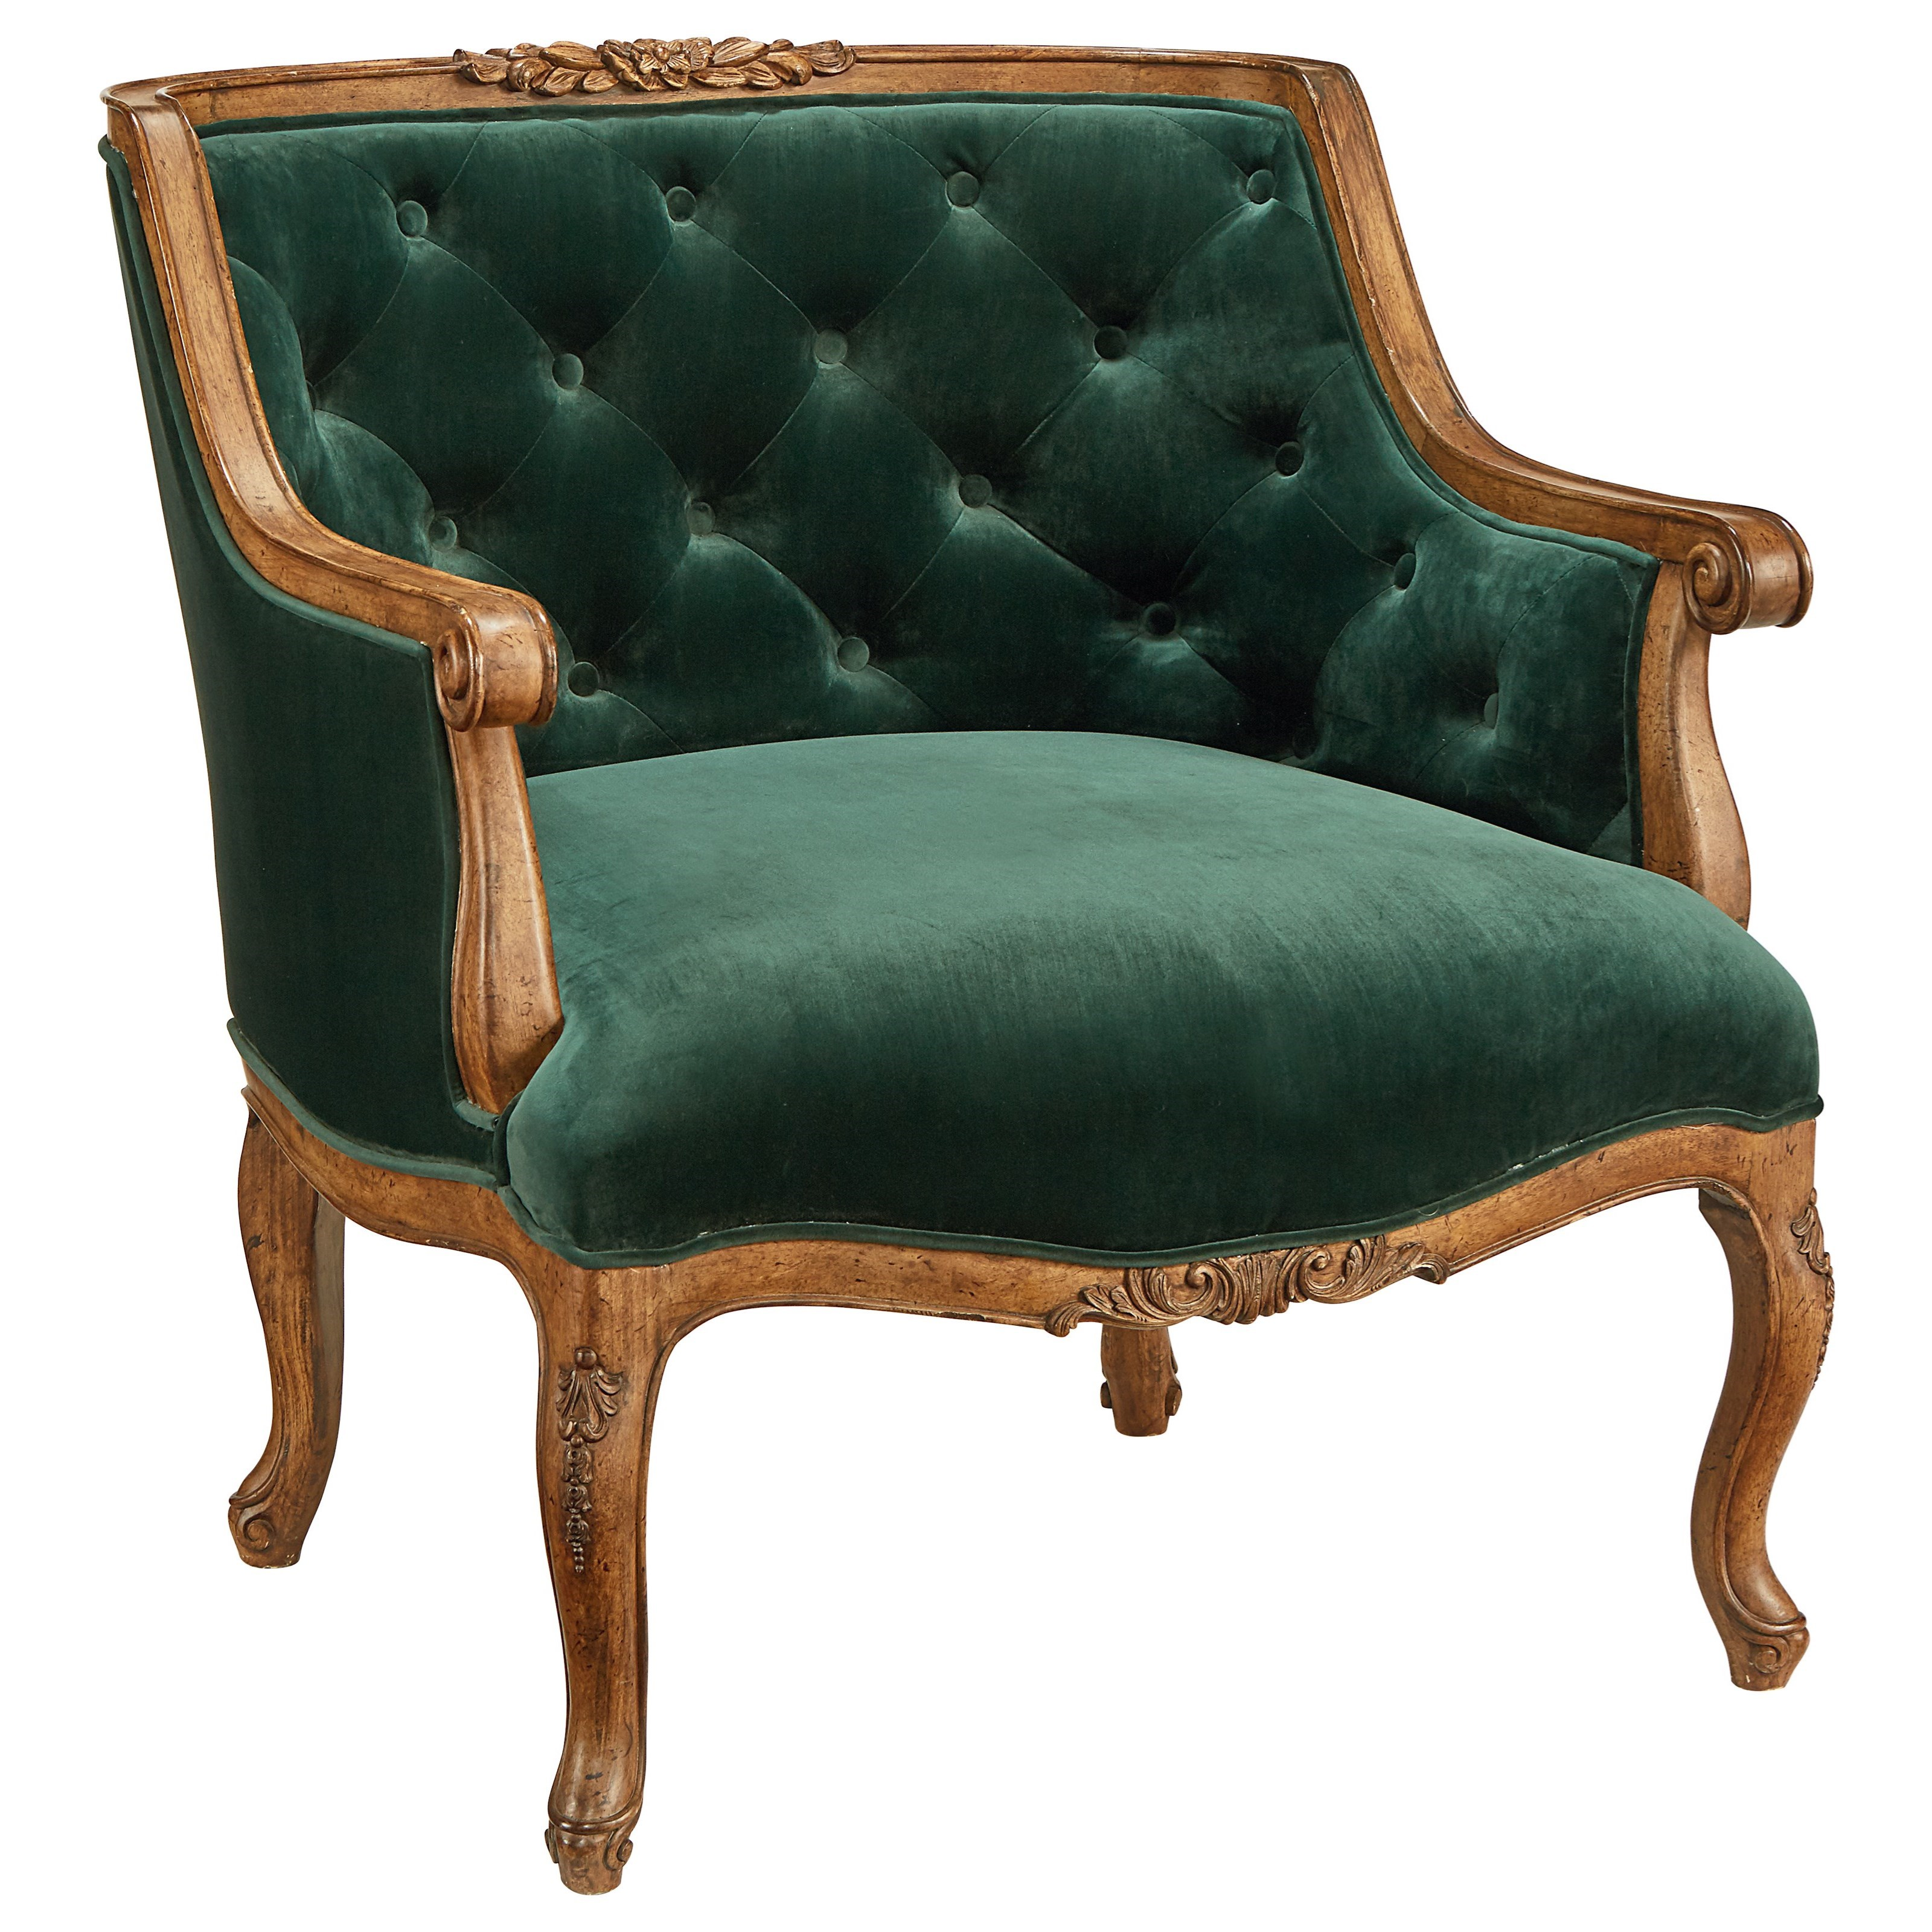 Green Upholstered Chair Magnolia Home By Joanna Gaines Accent Chairs 80612060 Bloom